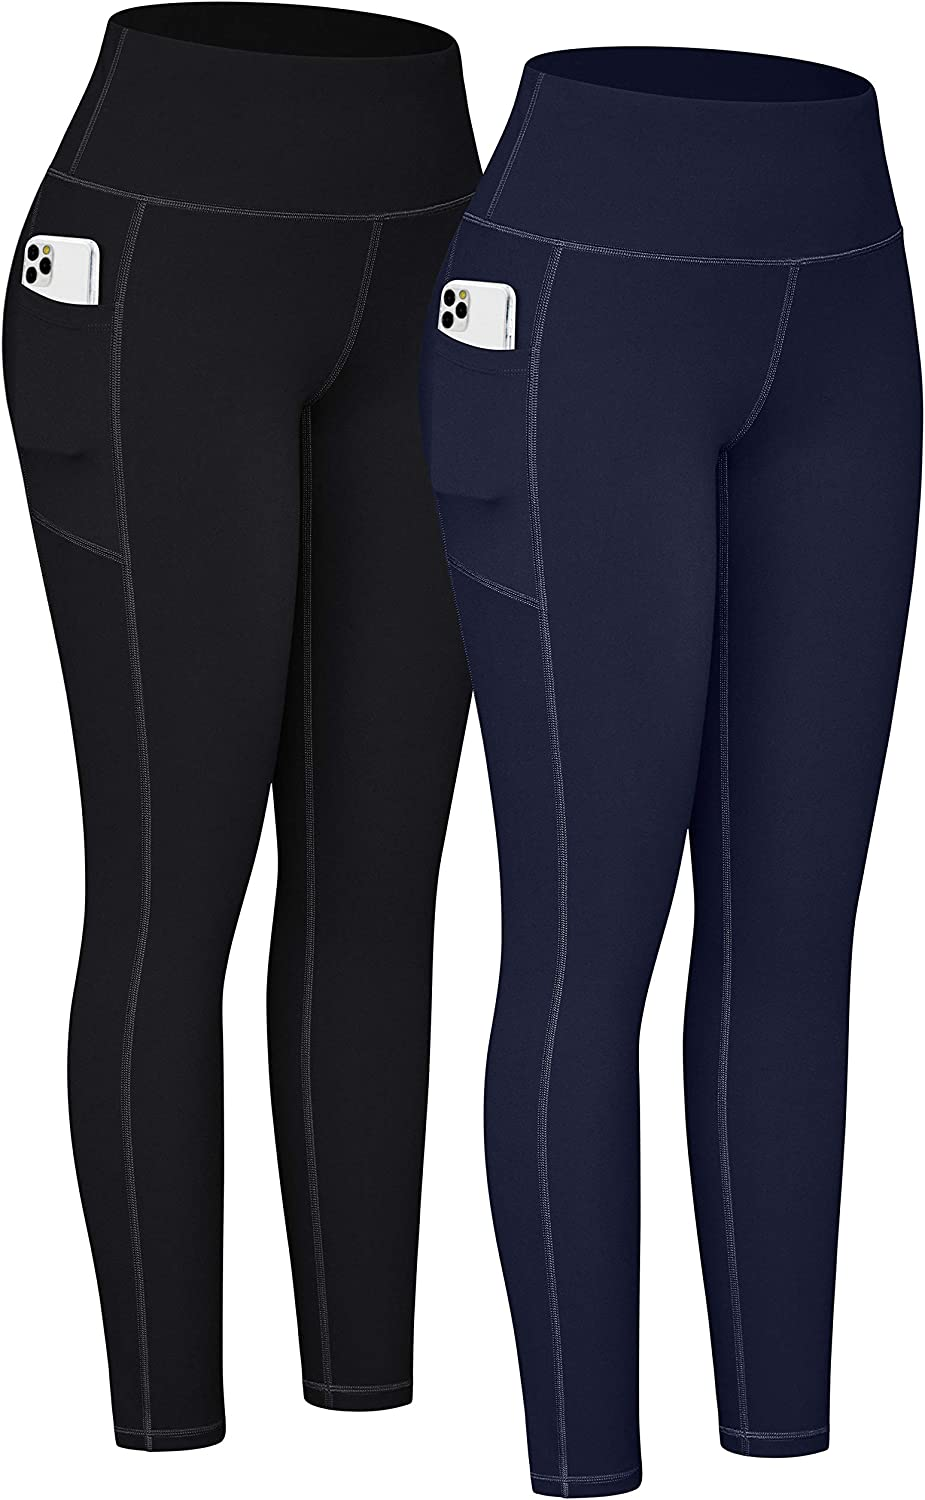 TOREEL Workout Leggings for Women with Pockets High Waisted Yoga Pants with Pockets for Women Leggings with Pockets